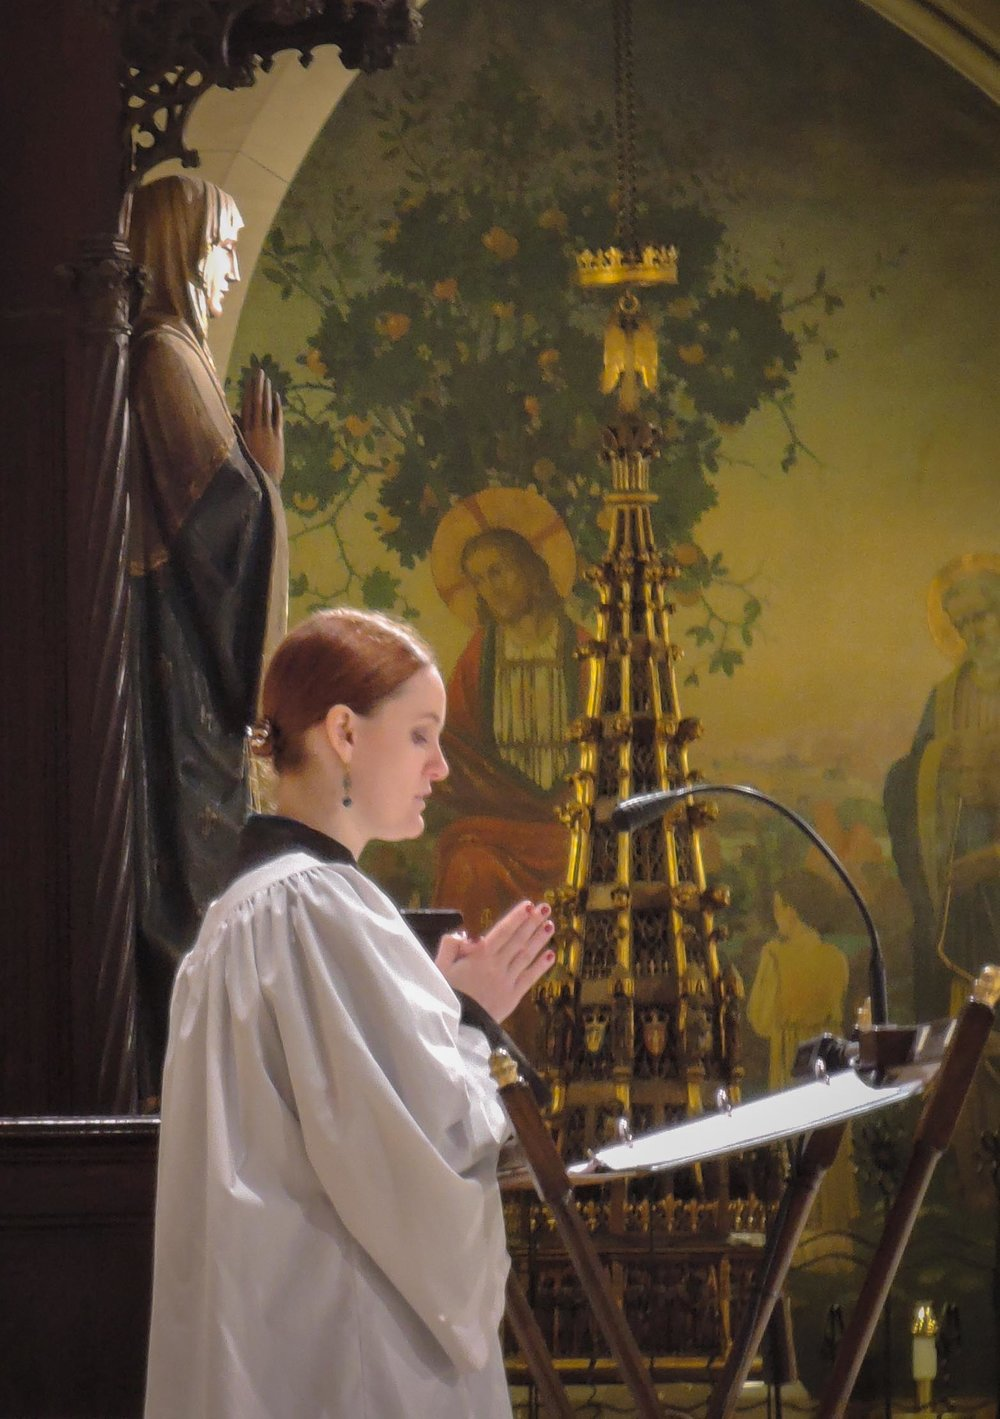 In the absence of a deacon, the prayers of the people are sung by a layperson, Grace Bruni.